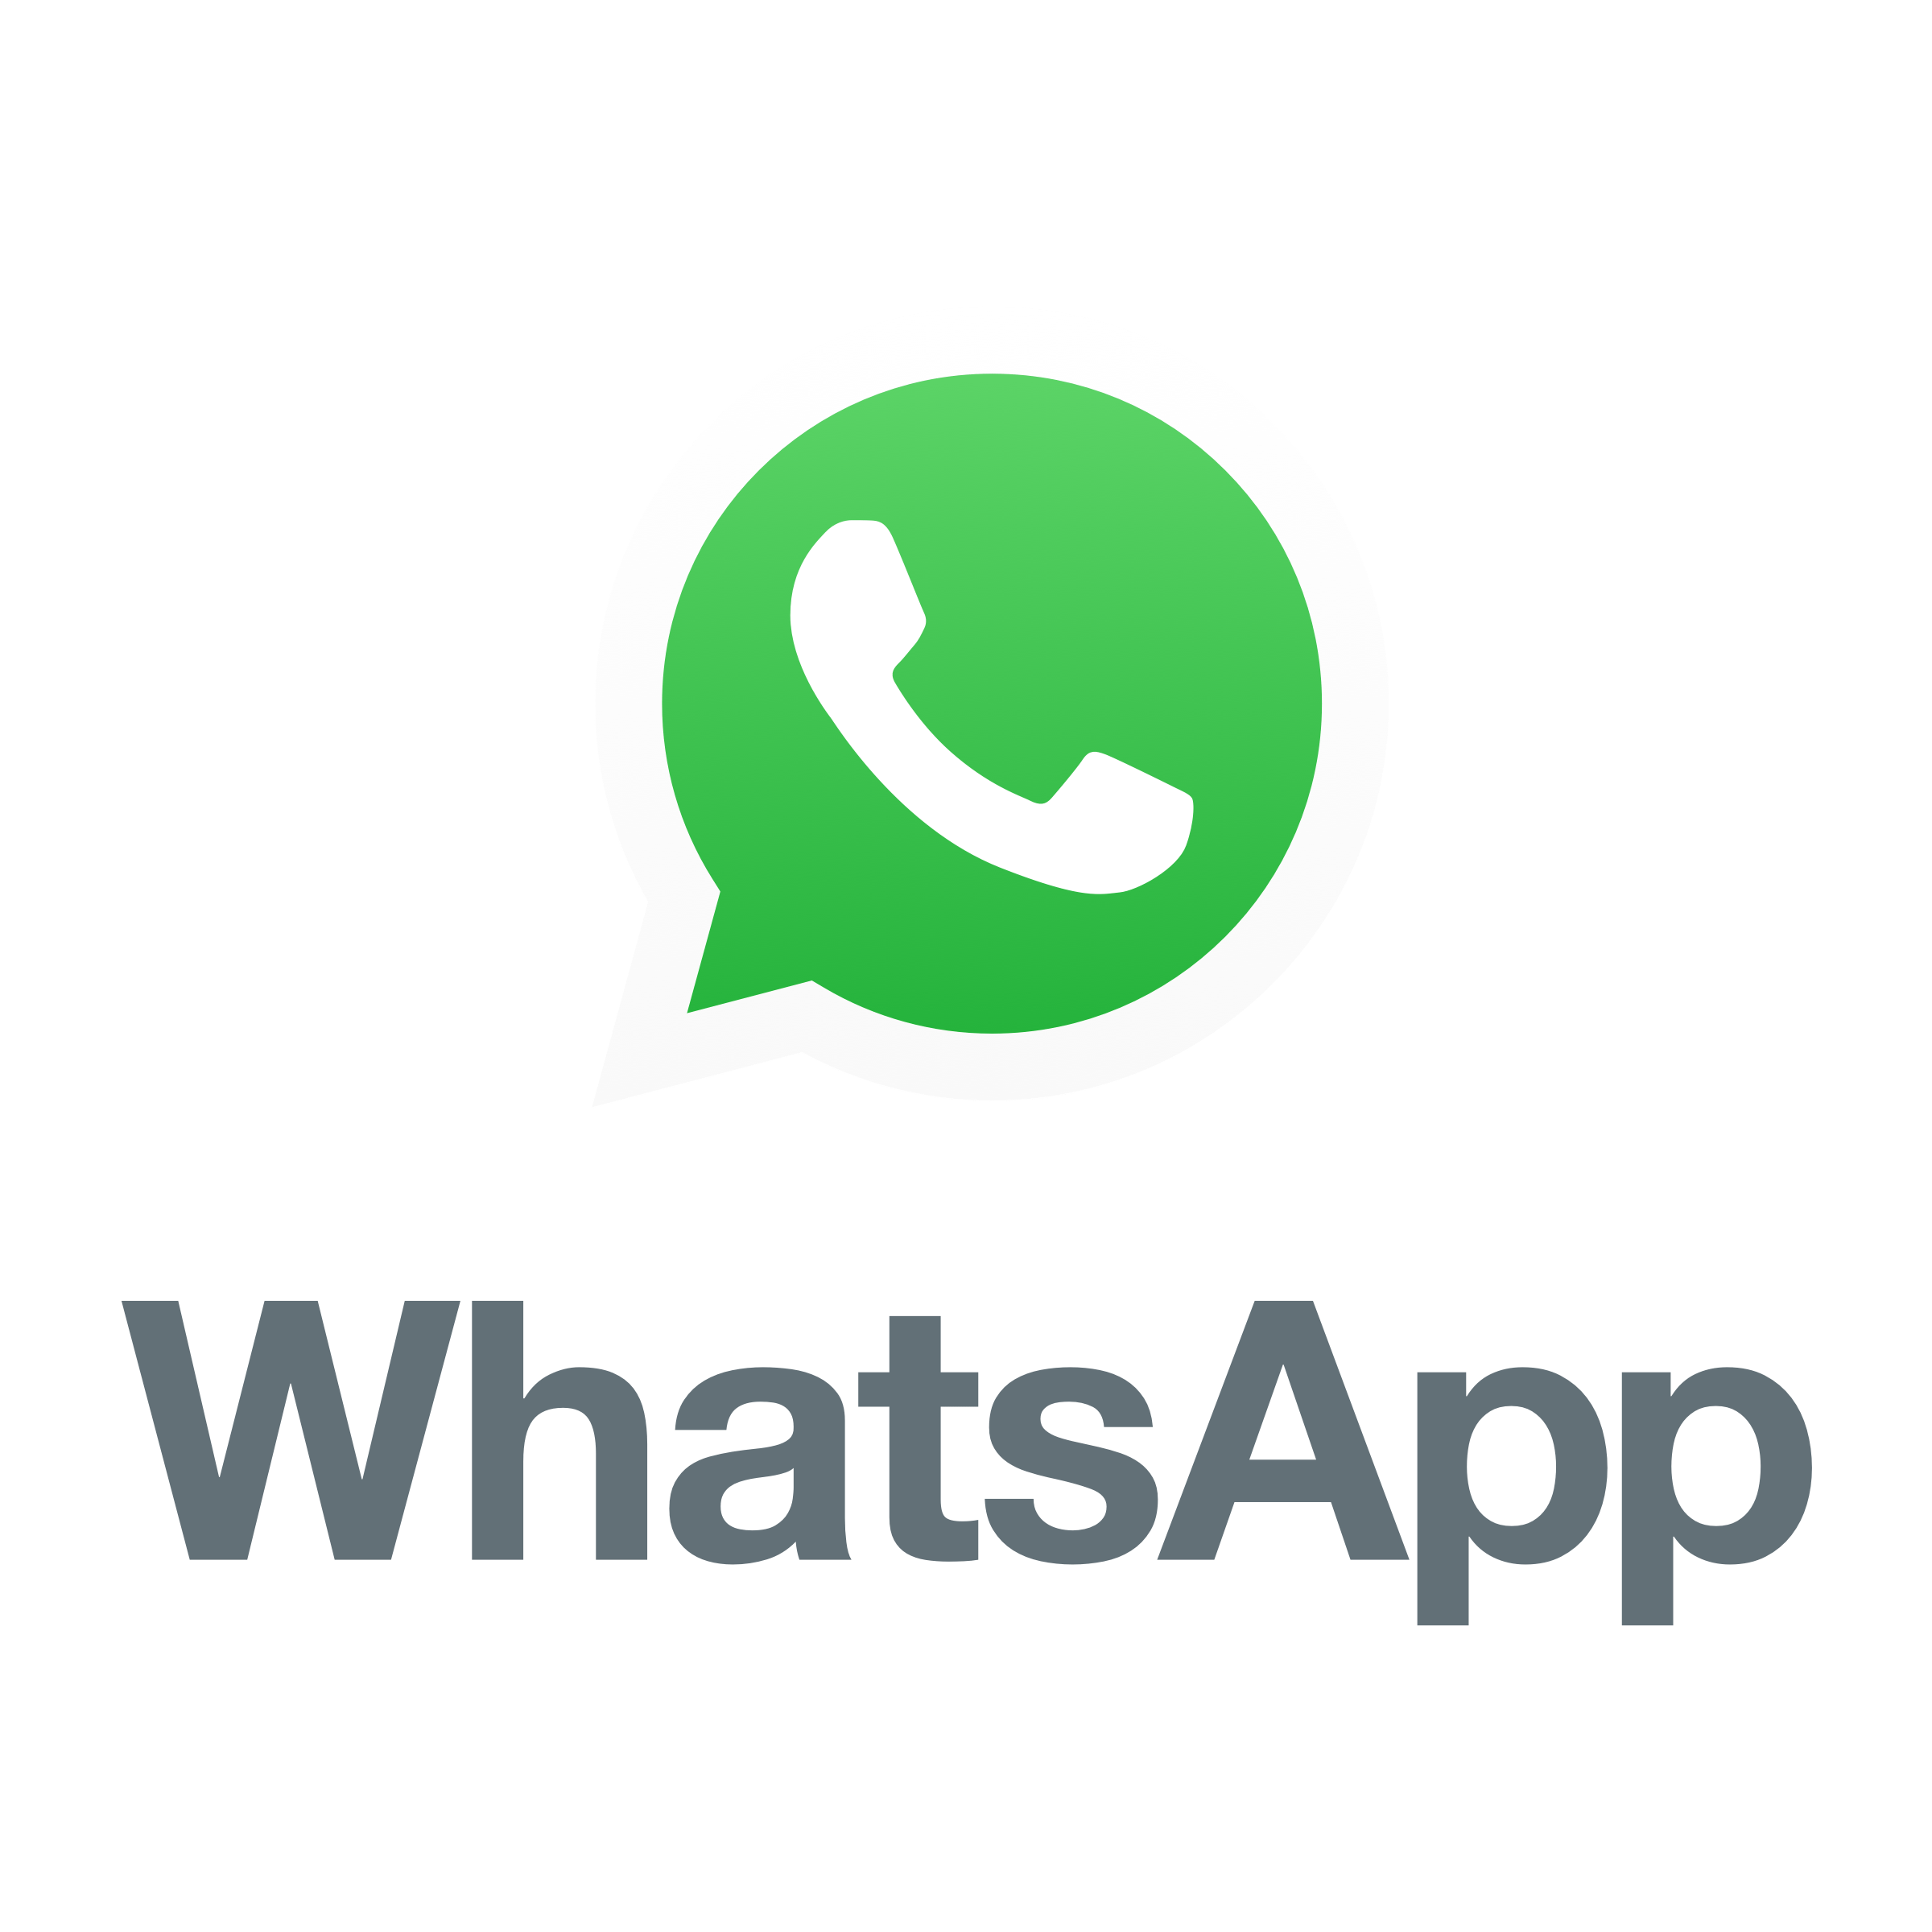 Logo do Whatsapp PNG [Fundo Transparente]